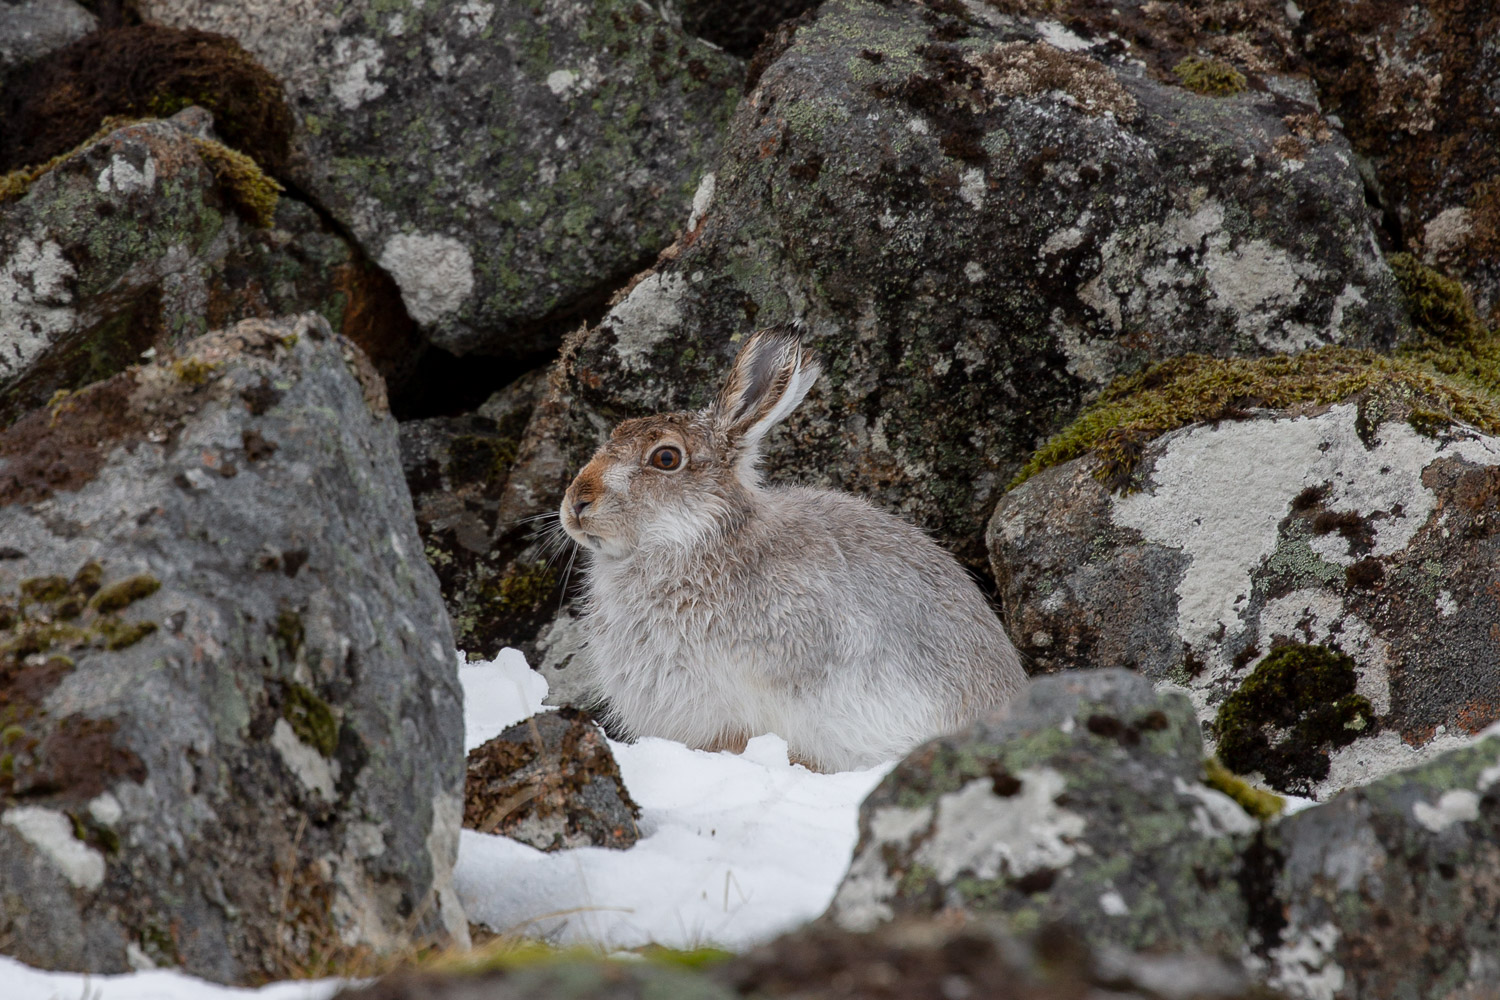 A mountain hare amongst rocks in the snow